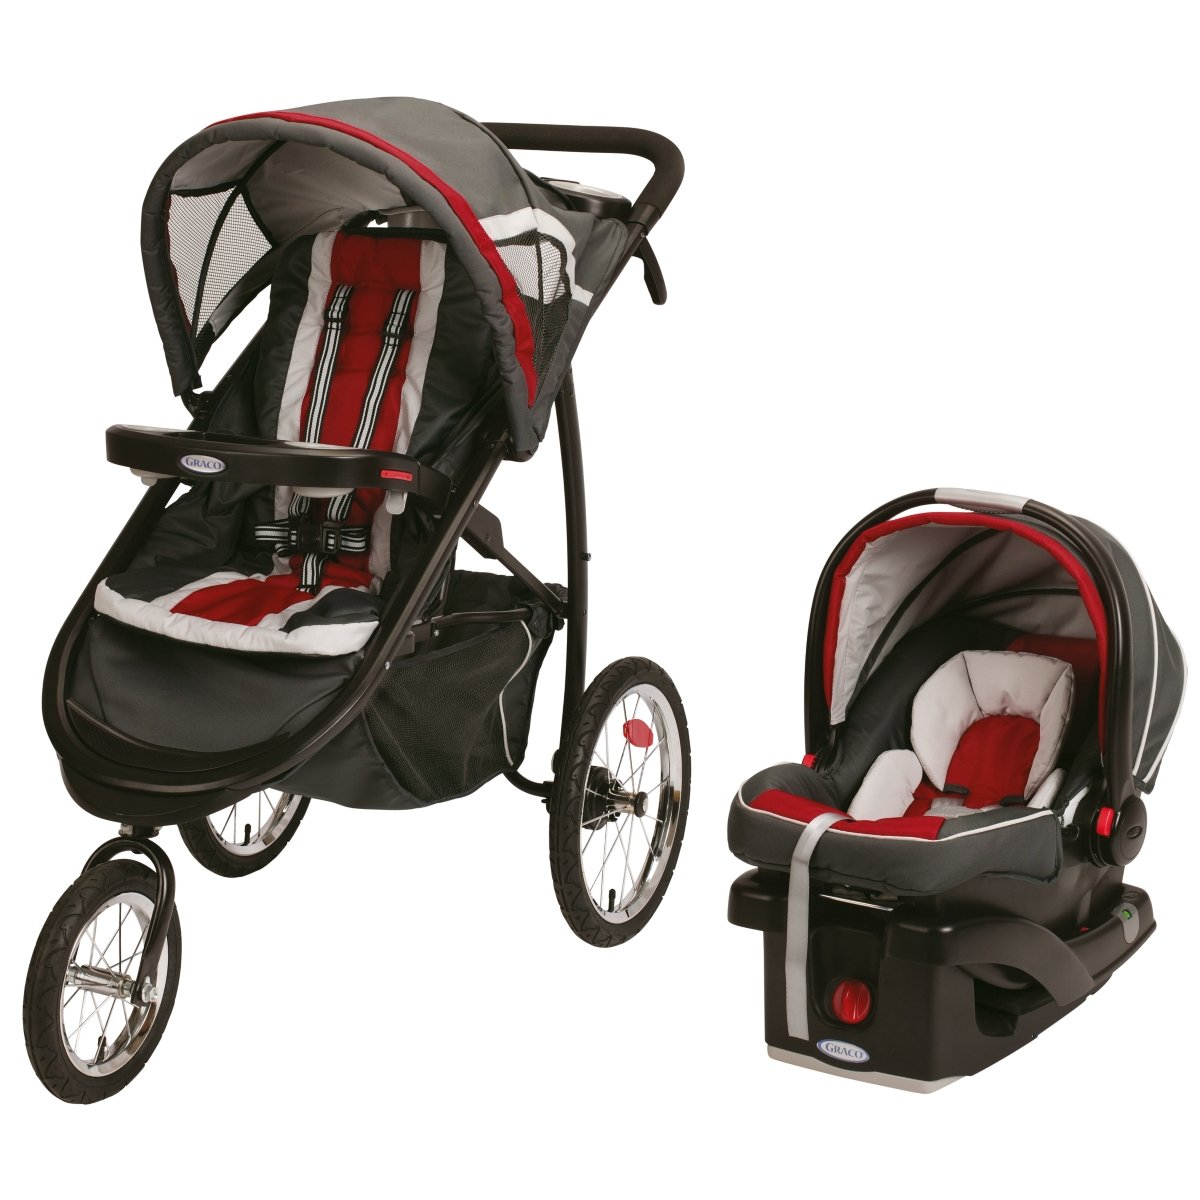 Safety First Stroller And Car Seats Infant Car Seat Stroller